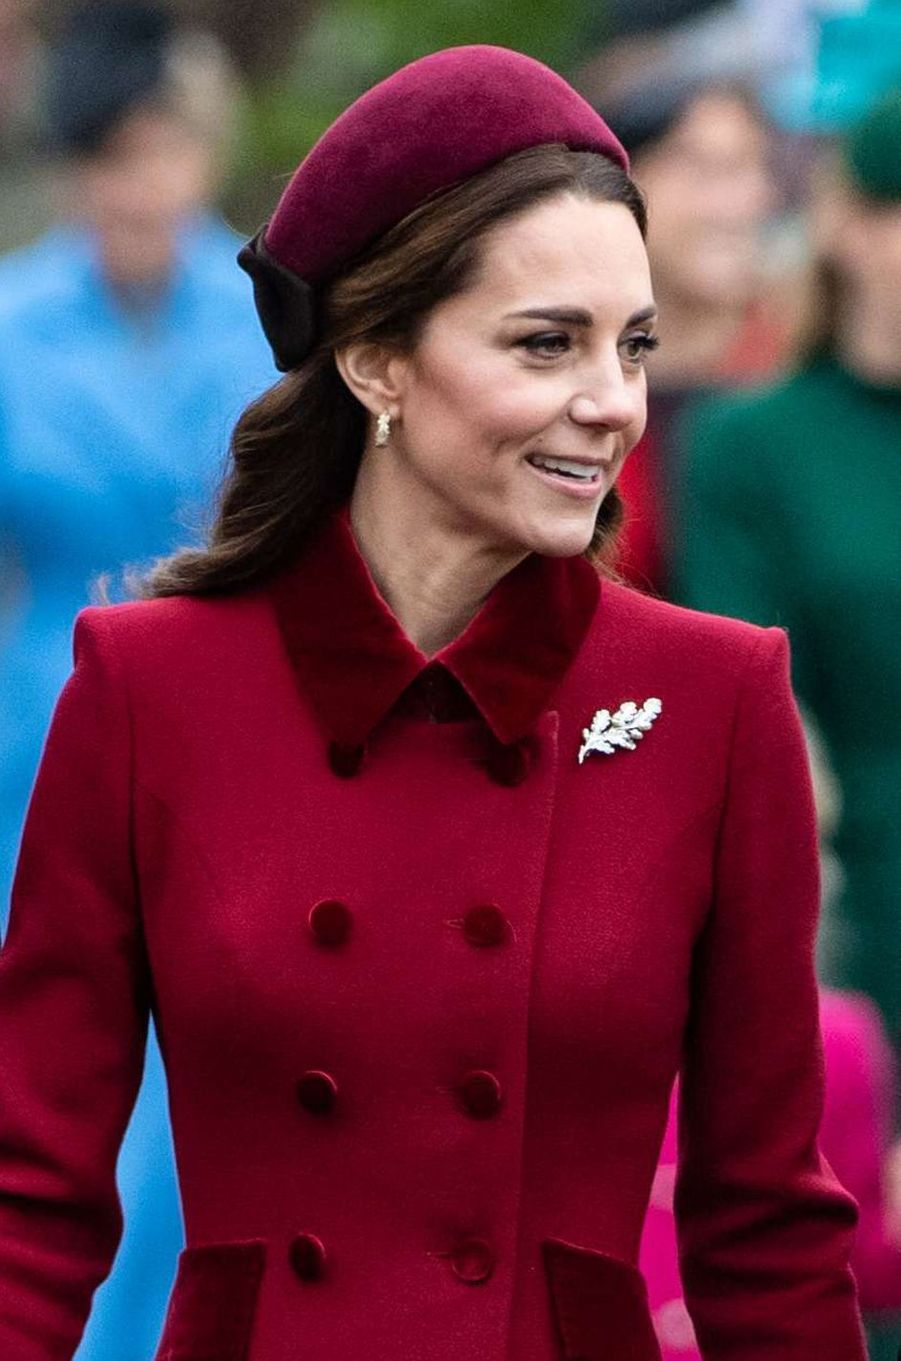 Kate Middleton, duchesse de Cambridge, à Sandringham le 25 décembre 2018